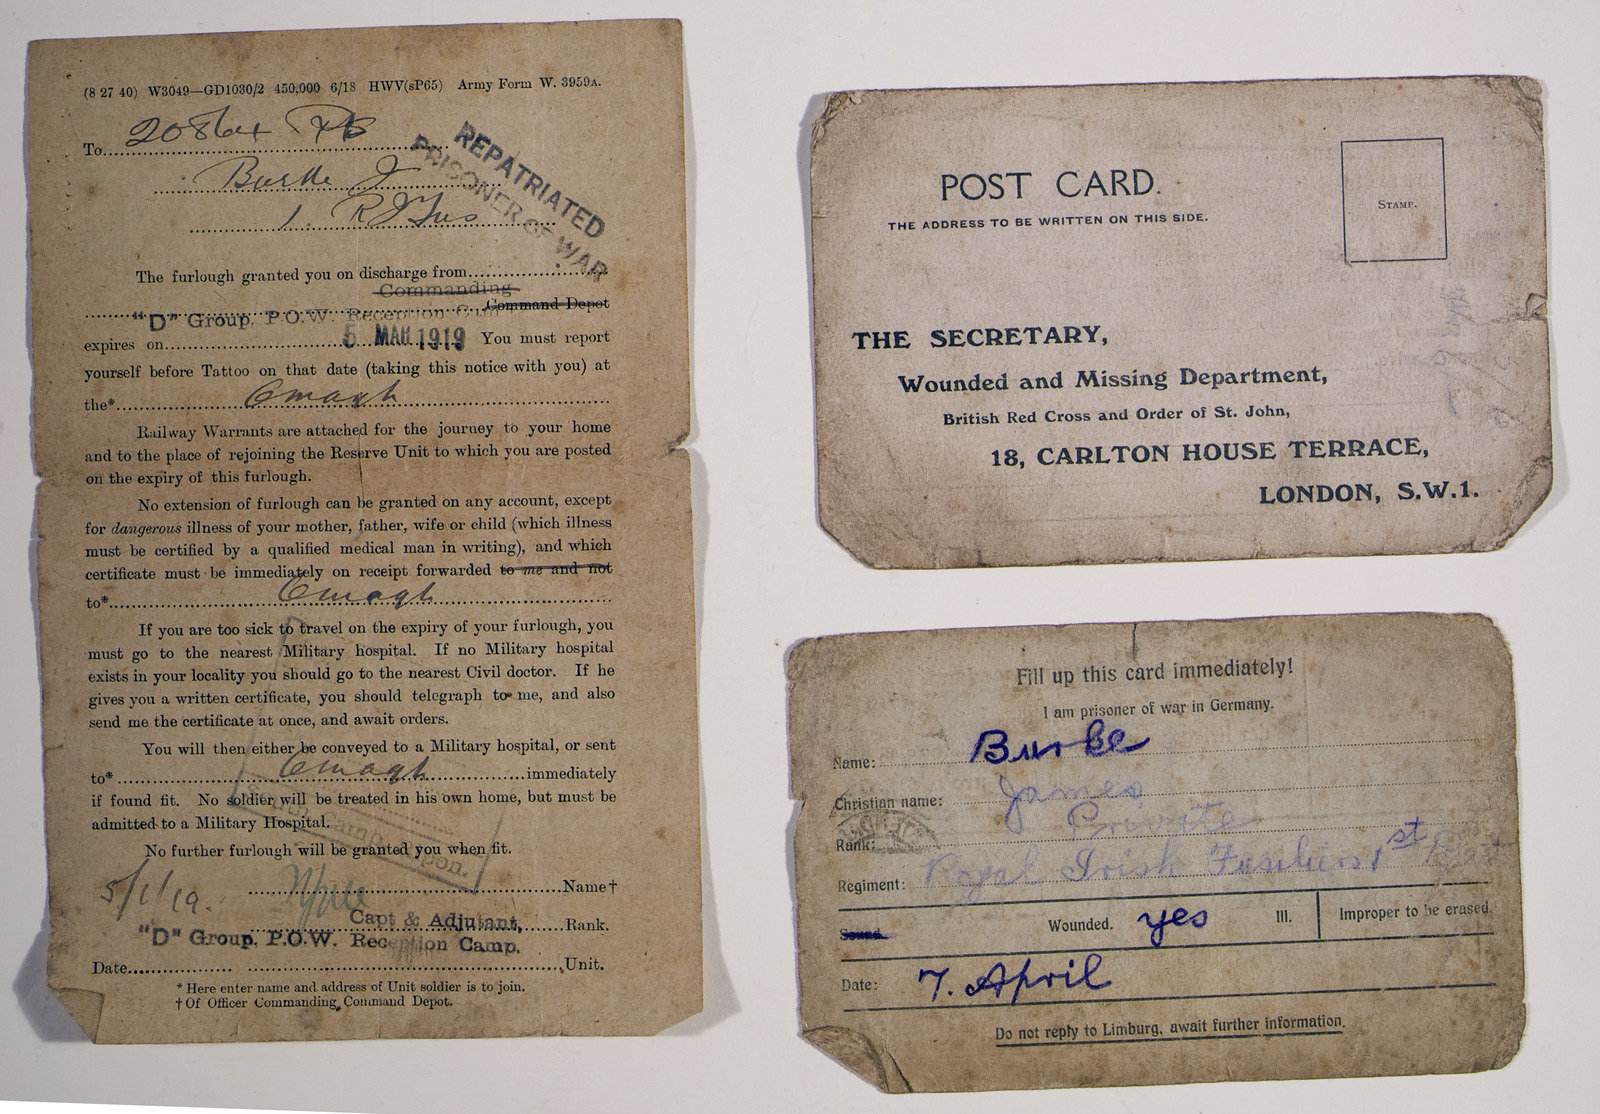 Items related to James Burke's experience as a prisoner of war, 6 March 1919, Europeana 1914-1918 / Don Mullan, CC BY-NC-SA